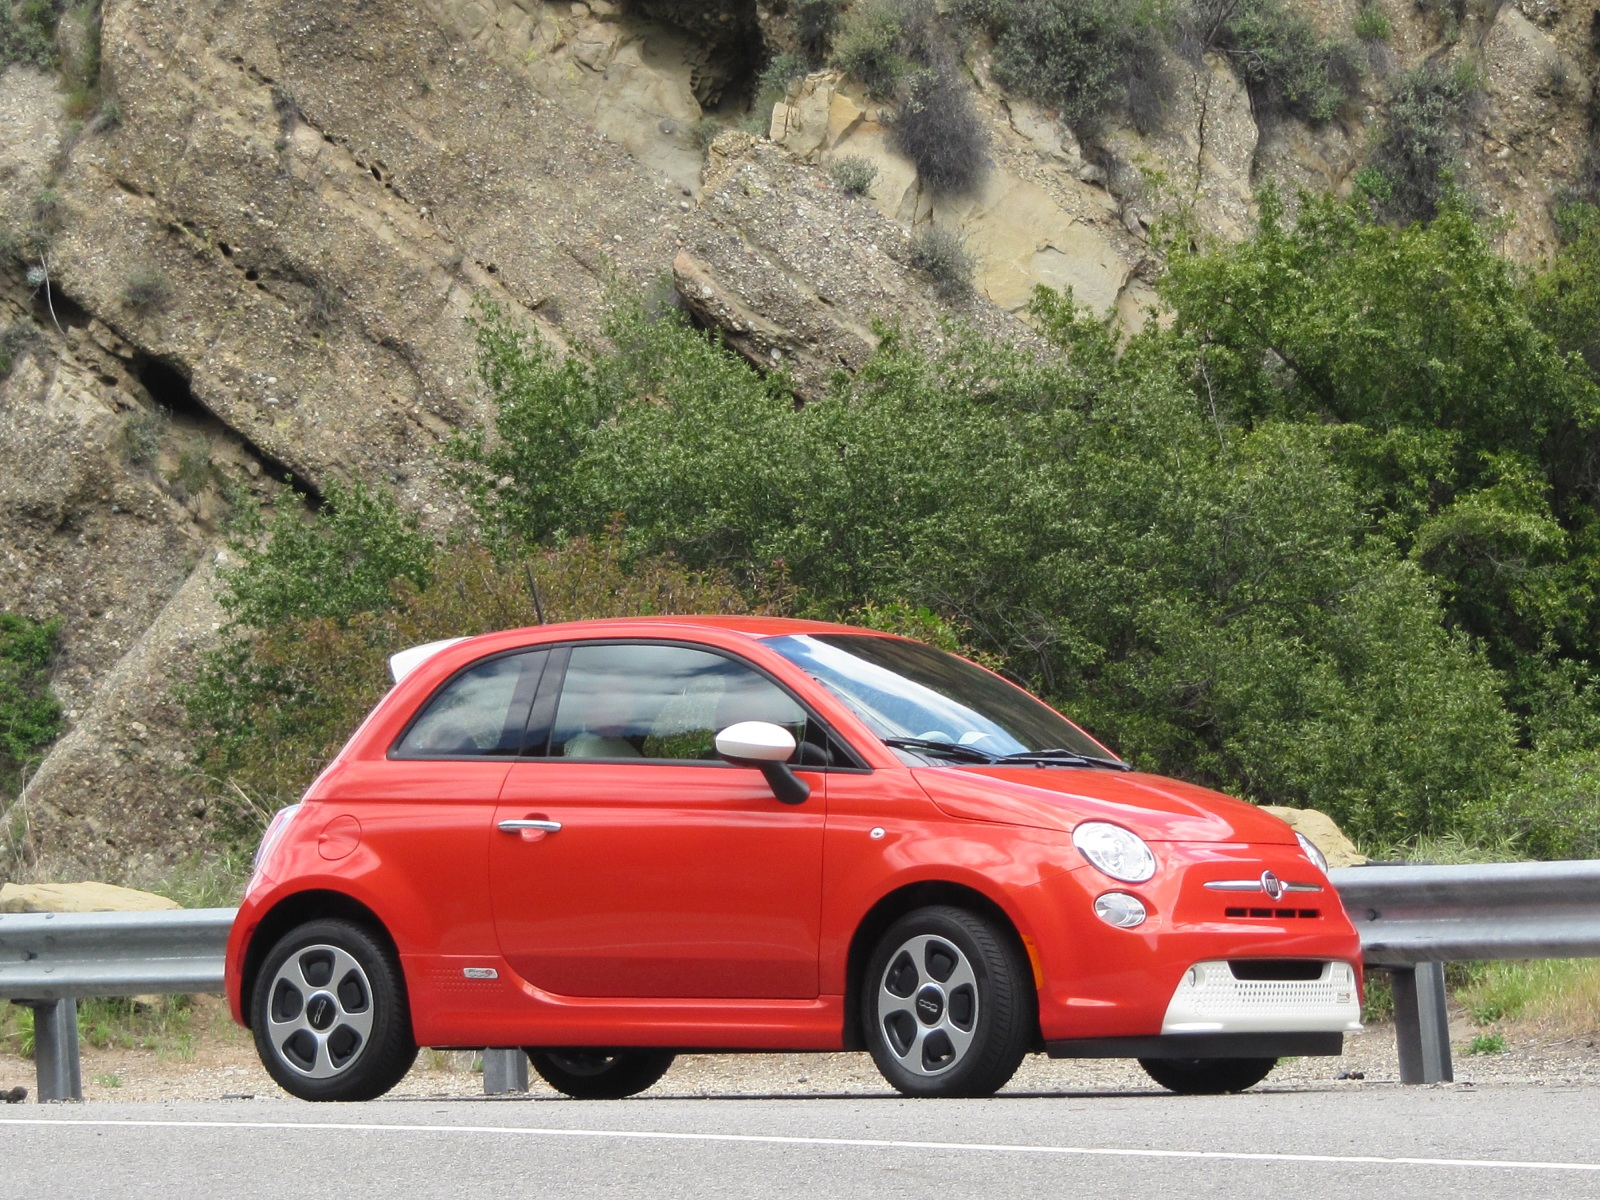 Fiat 500e electric Photos Best Looking Car High Resolution Wallpaper Free